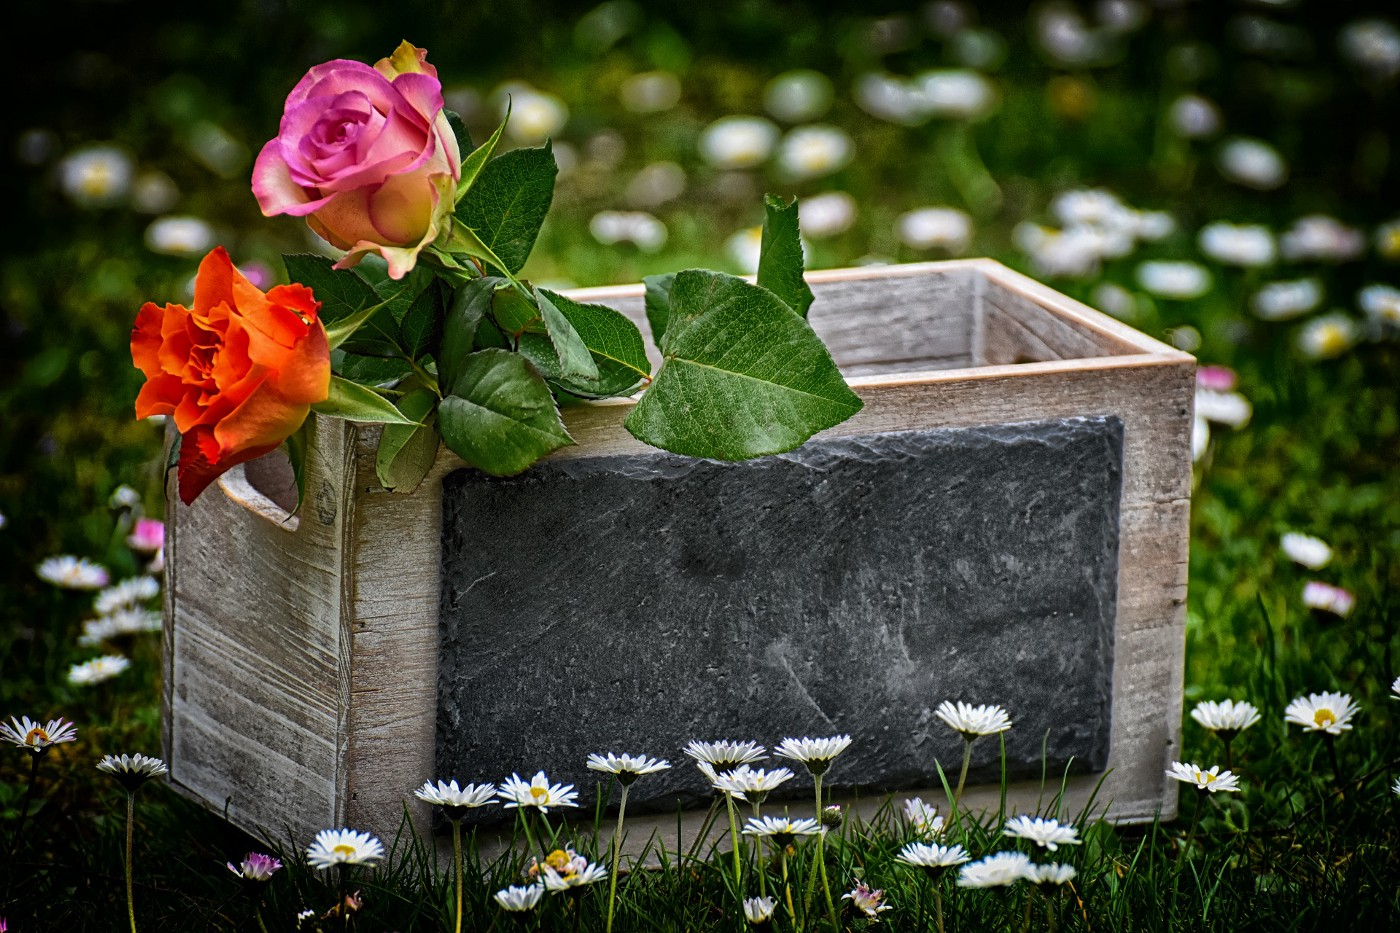 2 beautiful red roses in a box in a garden